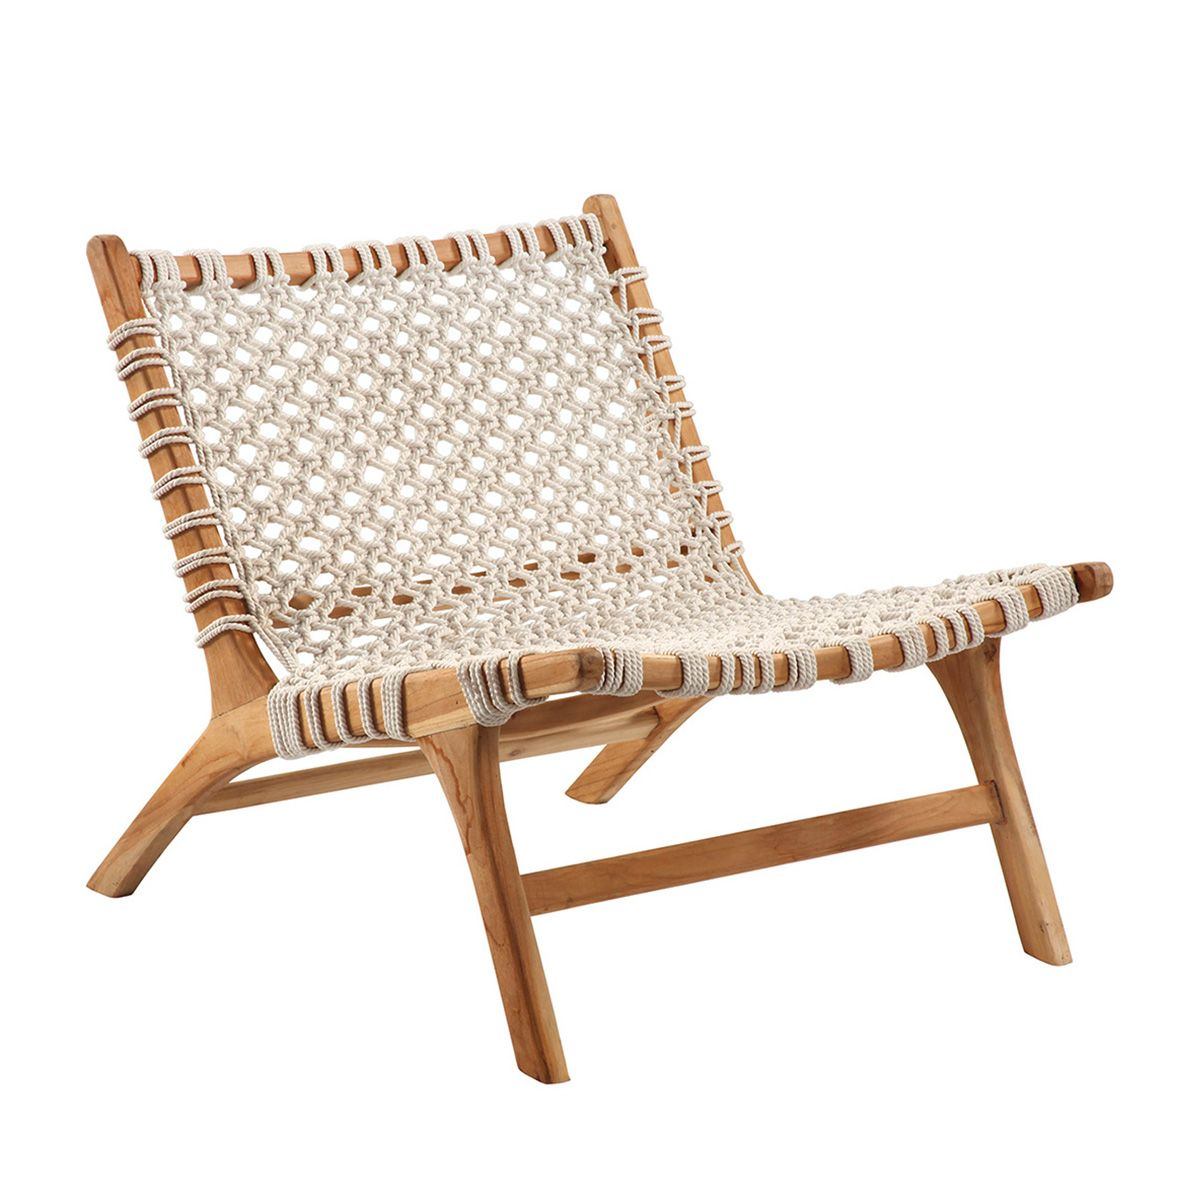 Modern White Rope And Acacia Wood Easy Chair Beautiful Low Layback Design With Lots Of Comfort And Style Seat Height In 2020 Easy Chair Furniture Chair Woven Chair